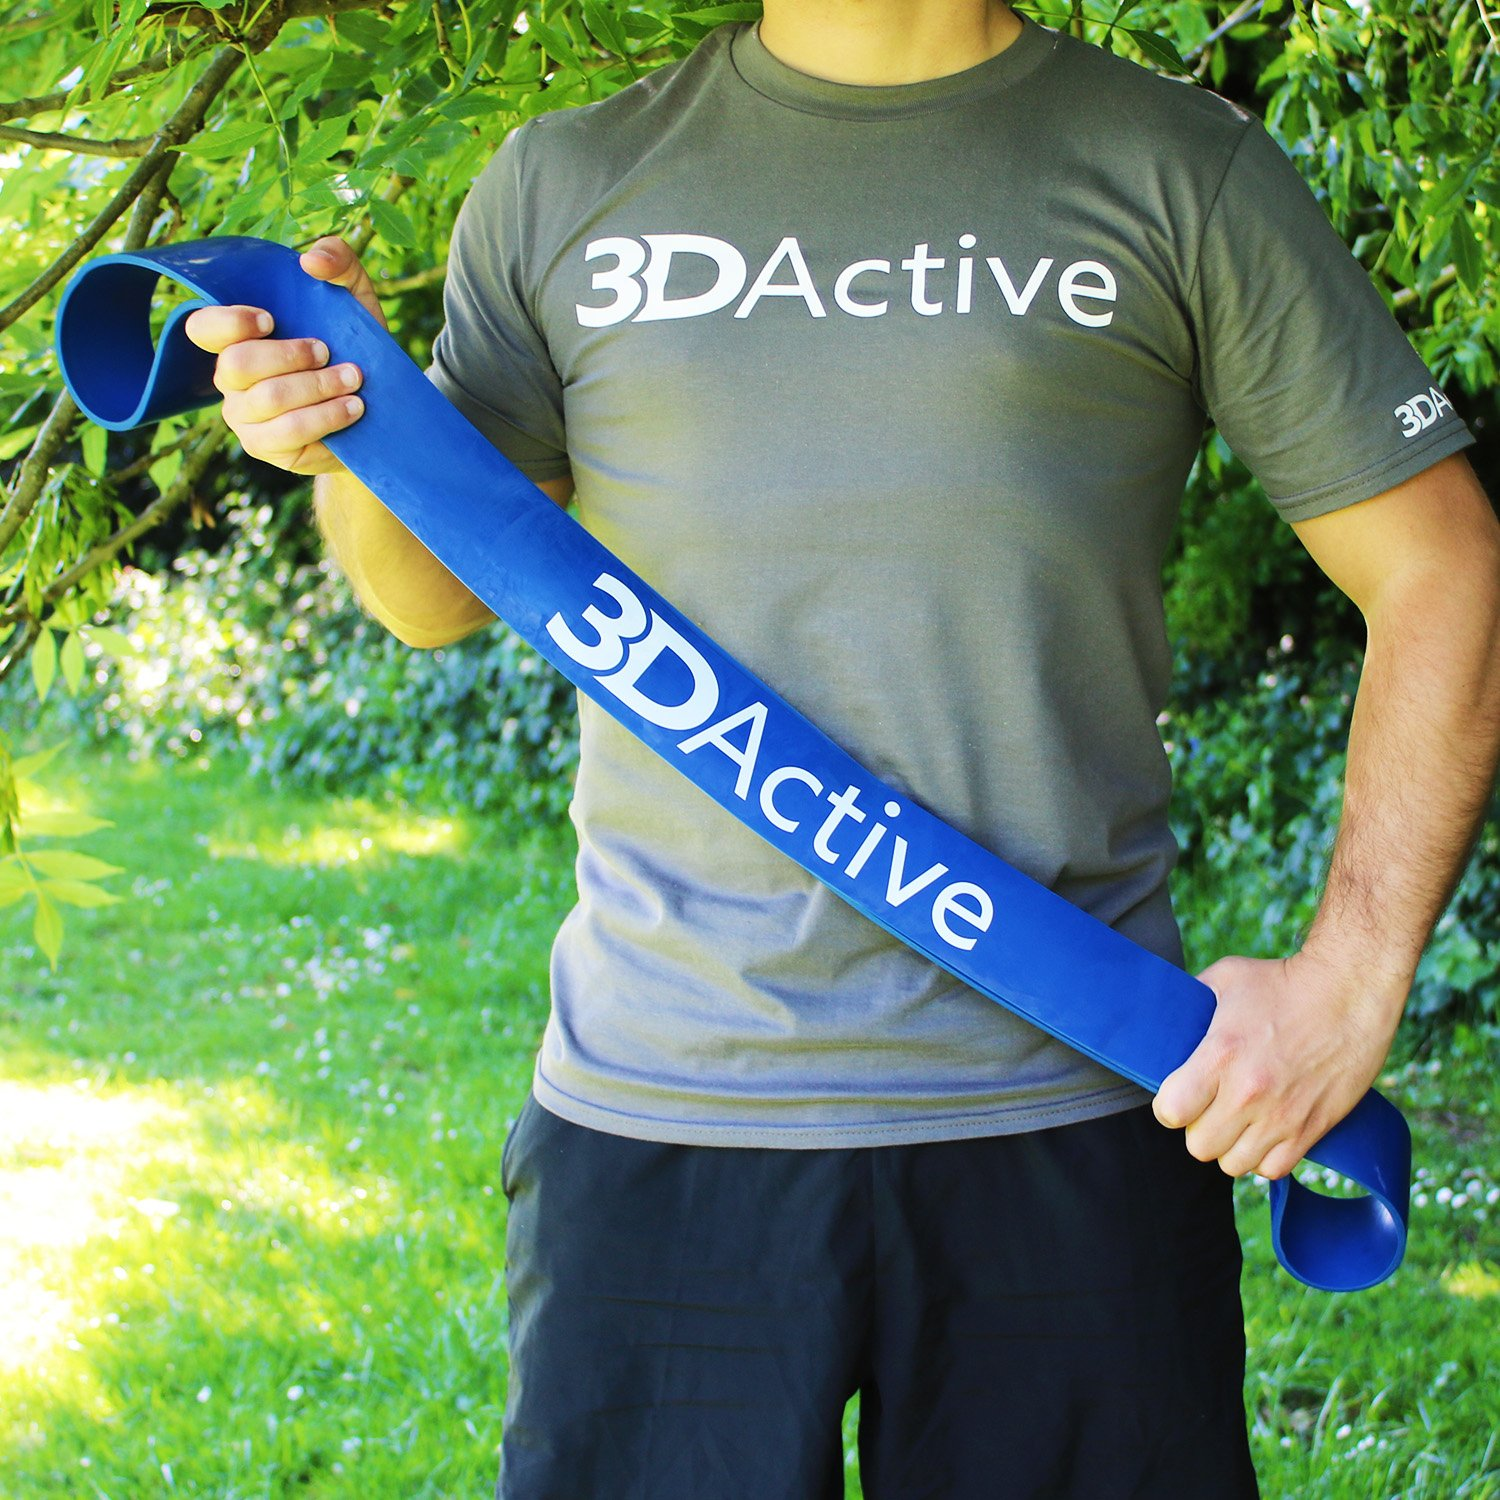 Powerlifting Bands Stretch Resistance Band 3DActive Pull Up Assist Bands Perfect for Body Stretching /& Resistance Training Carry Bag /& Free eBook Included Mobility Band Single Band or Set